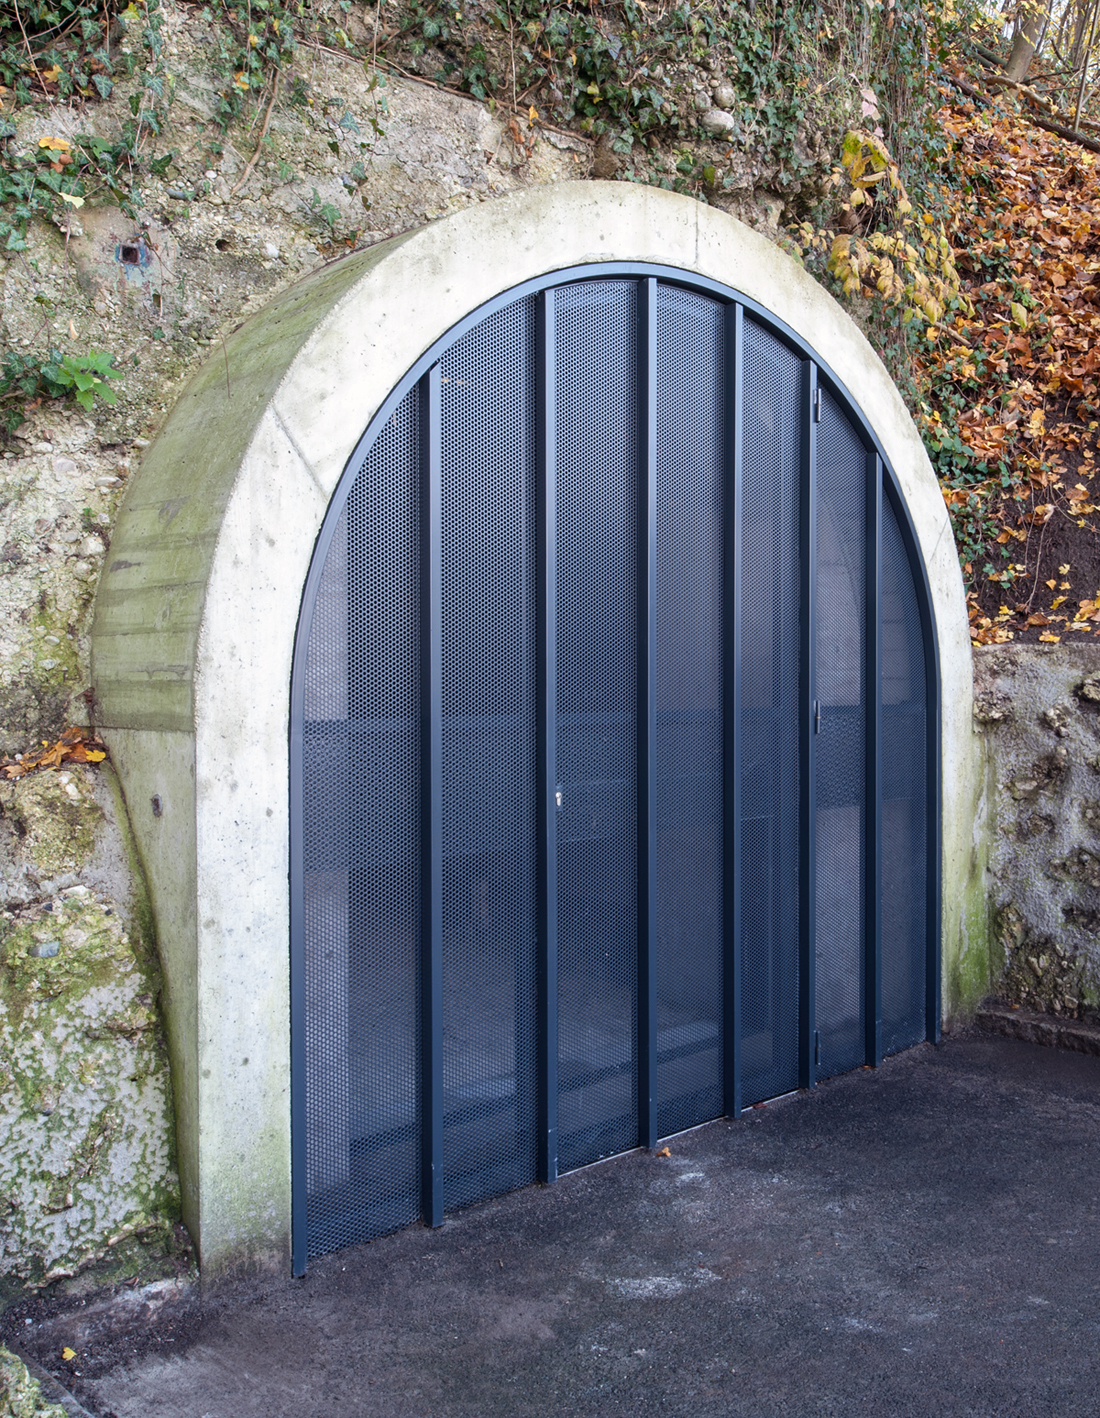 Gate 2: When closed the gates form translucent walls that close off the tunnel from the outside. There are no door handles or visible entry signs.